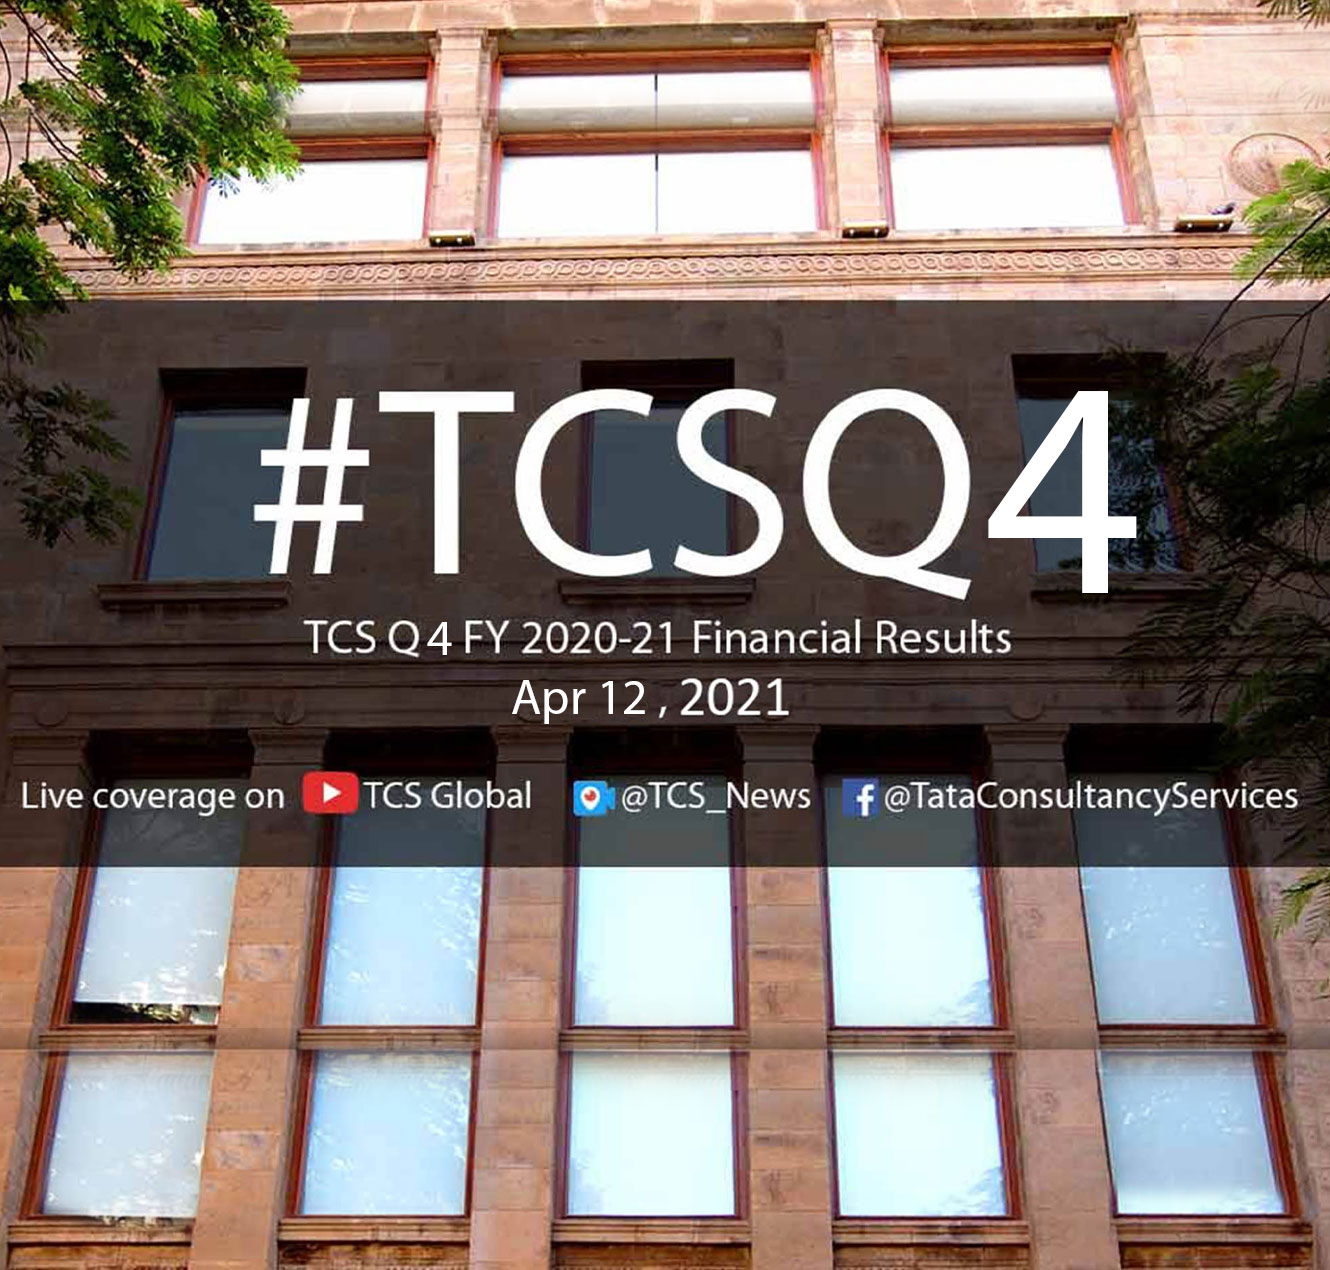 TCS Closes FY 21 on Strong Note: Looks at Growth and Transformation to Power the Future